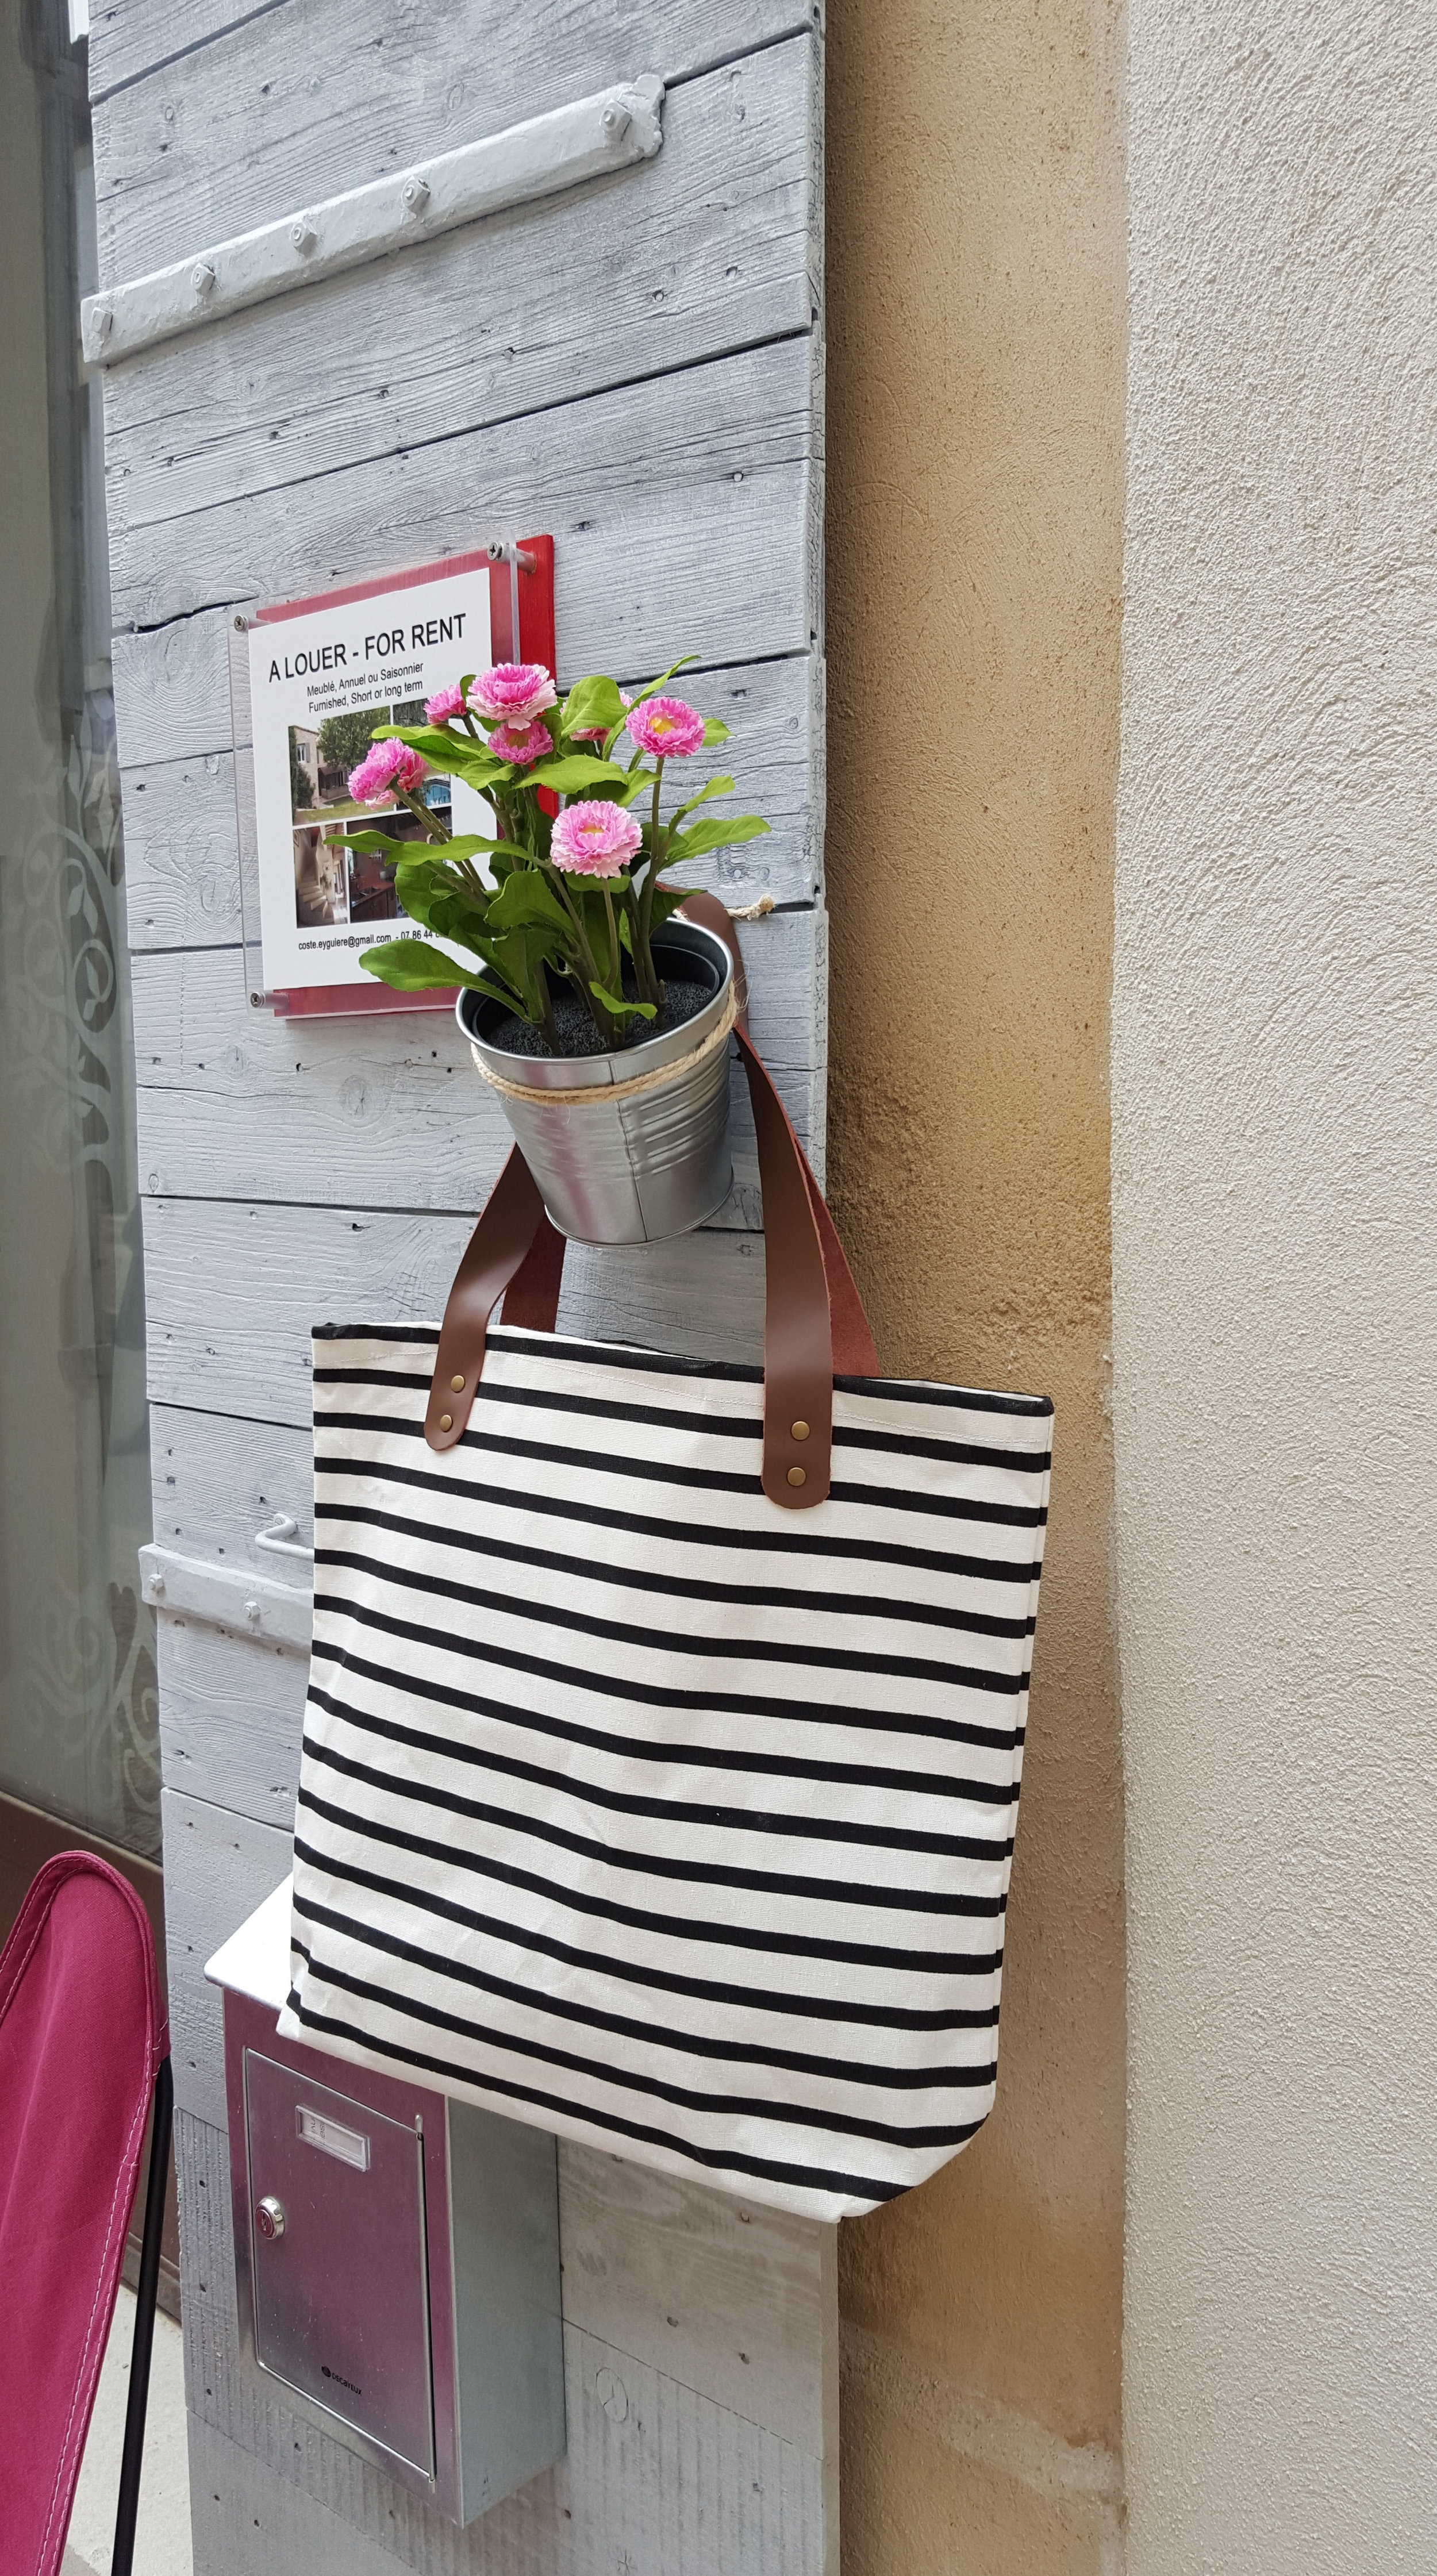 inviting storefront in provence _bag.jpg